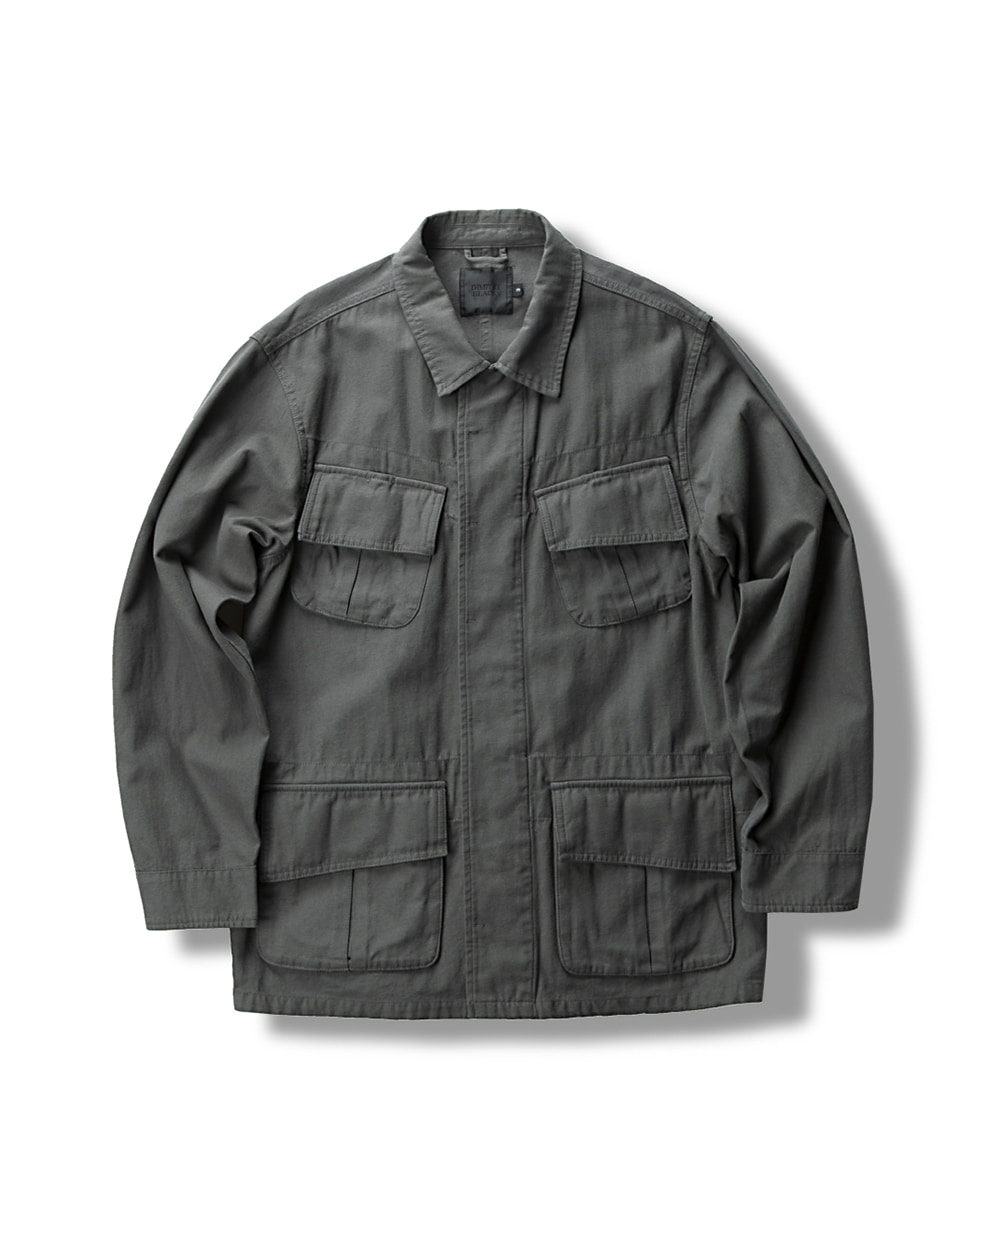 UTILITY JUNGLE FATIGUE JACKET GRAY